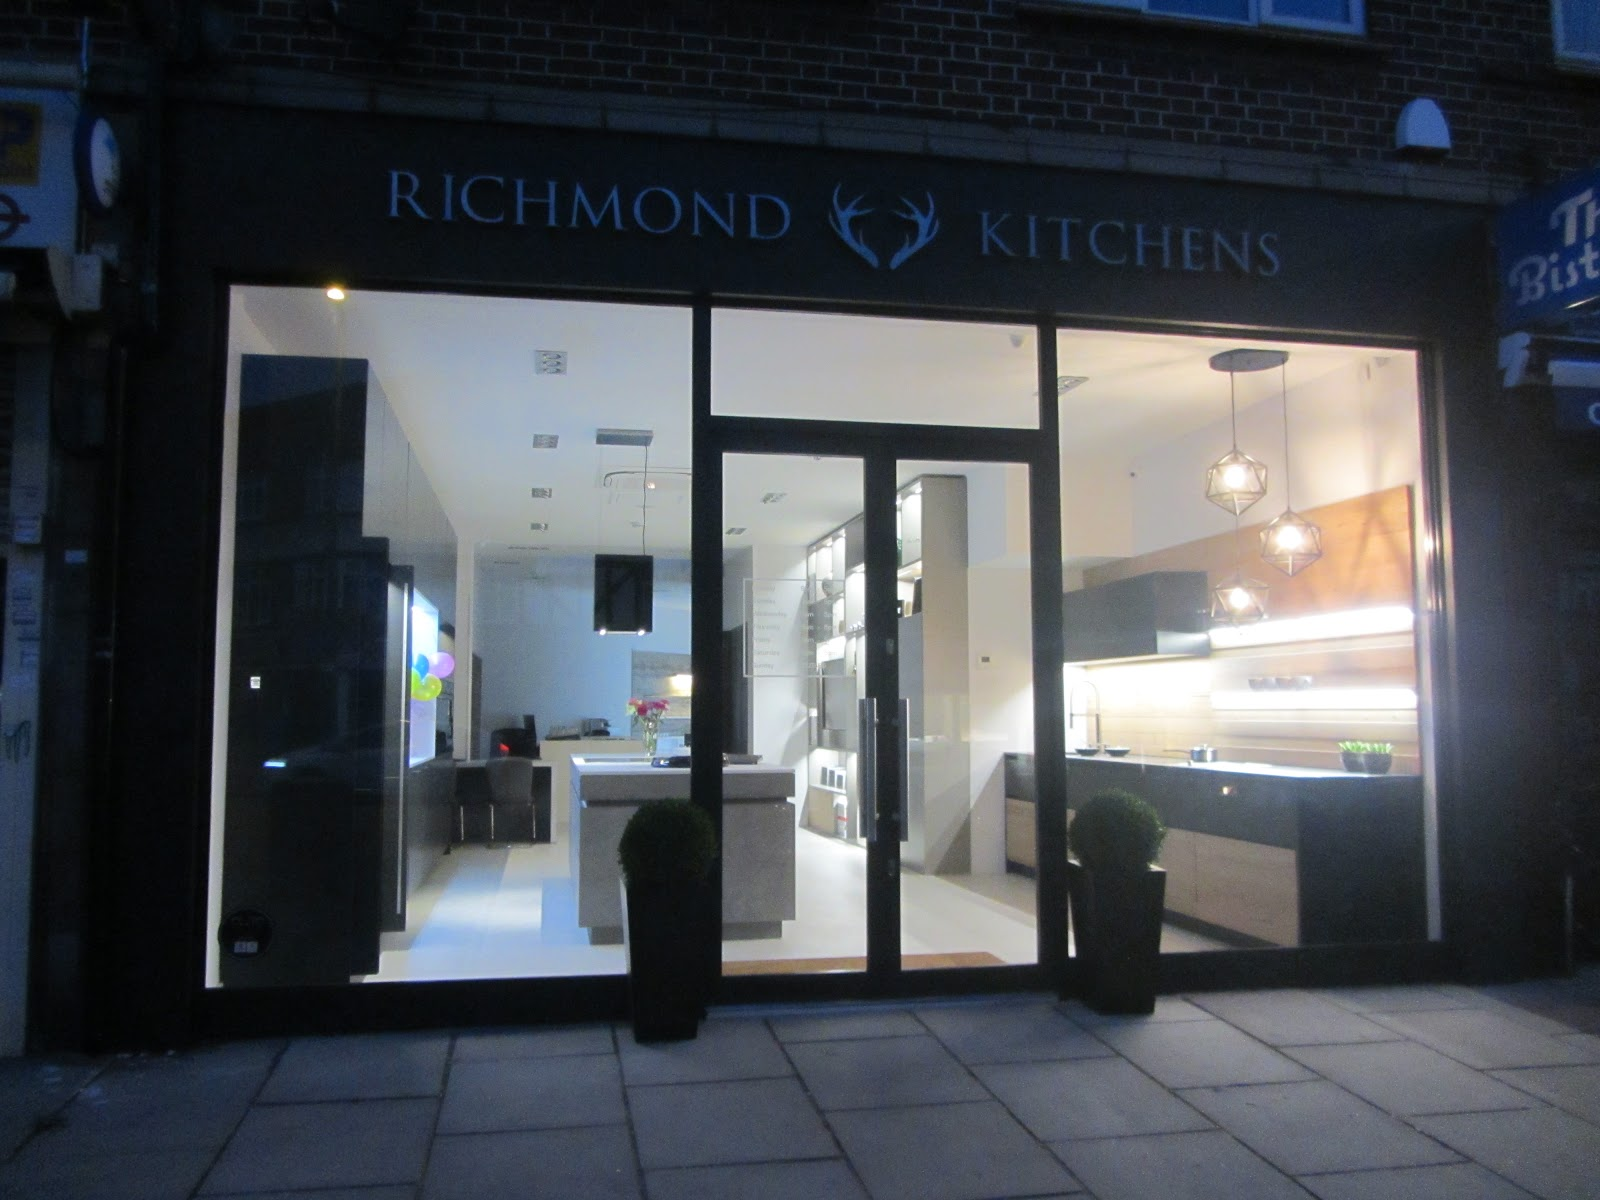 It Has Taken Quite A While To Come But Now That It Is Here Richmond Kitchens  Is Making Quite An Impact Visually. Sadly That Is Proving Hard To Capture  On ...